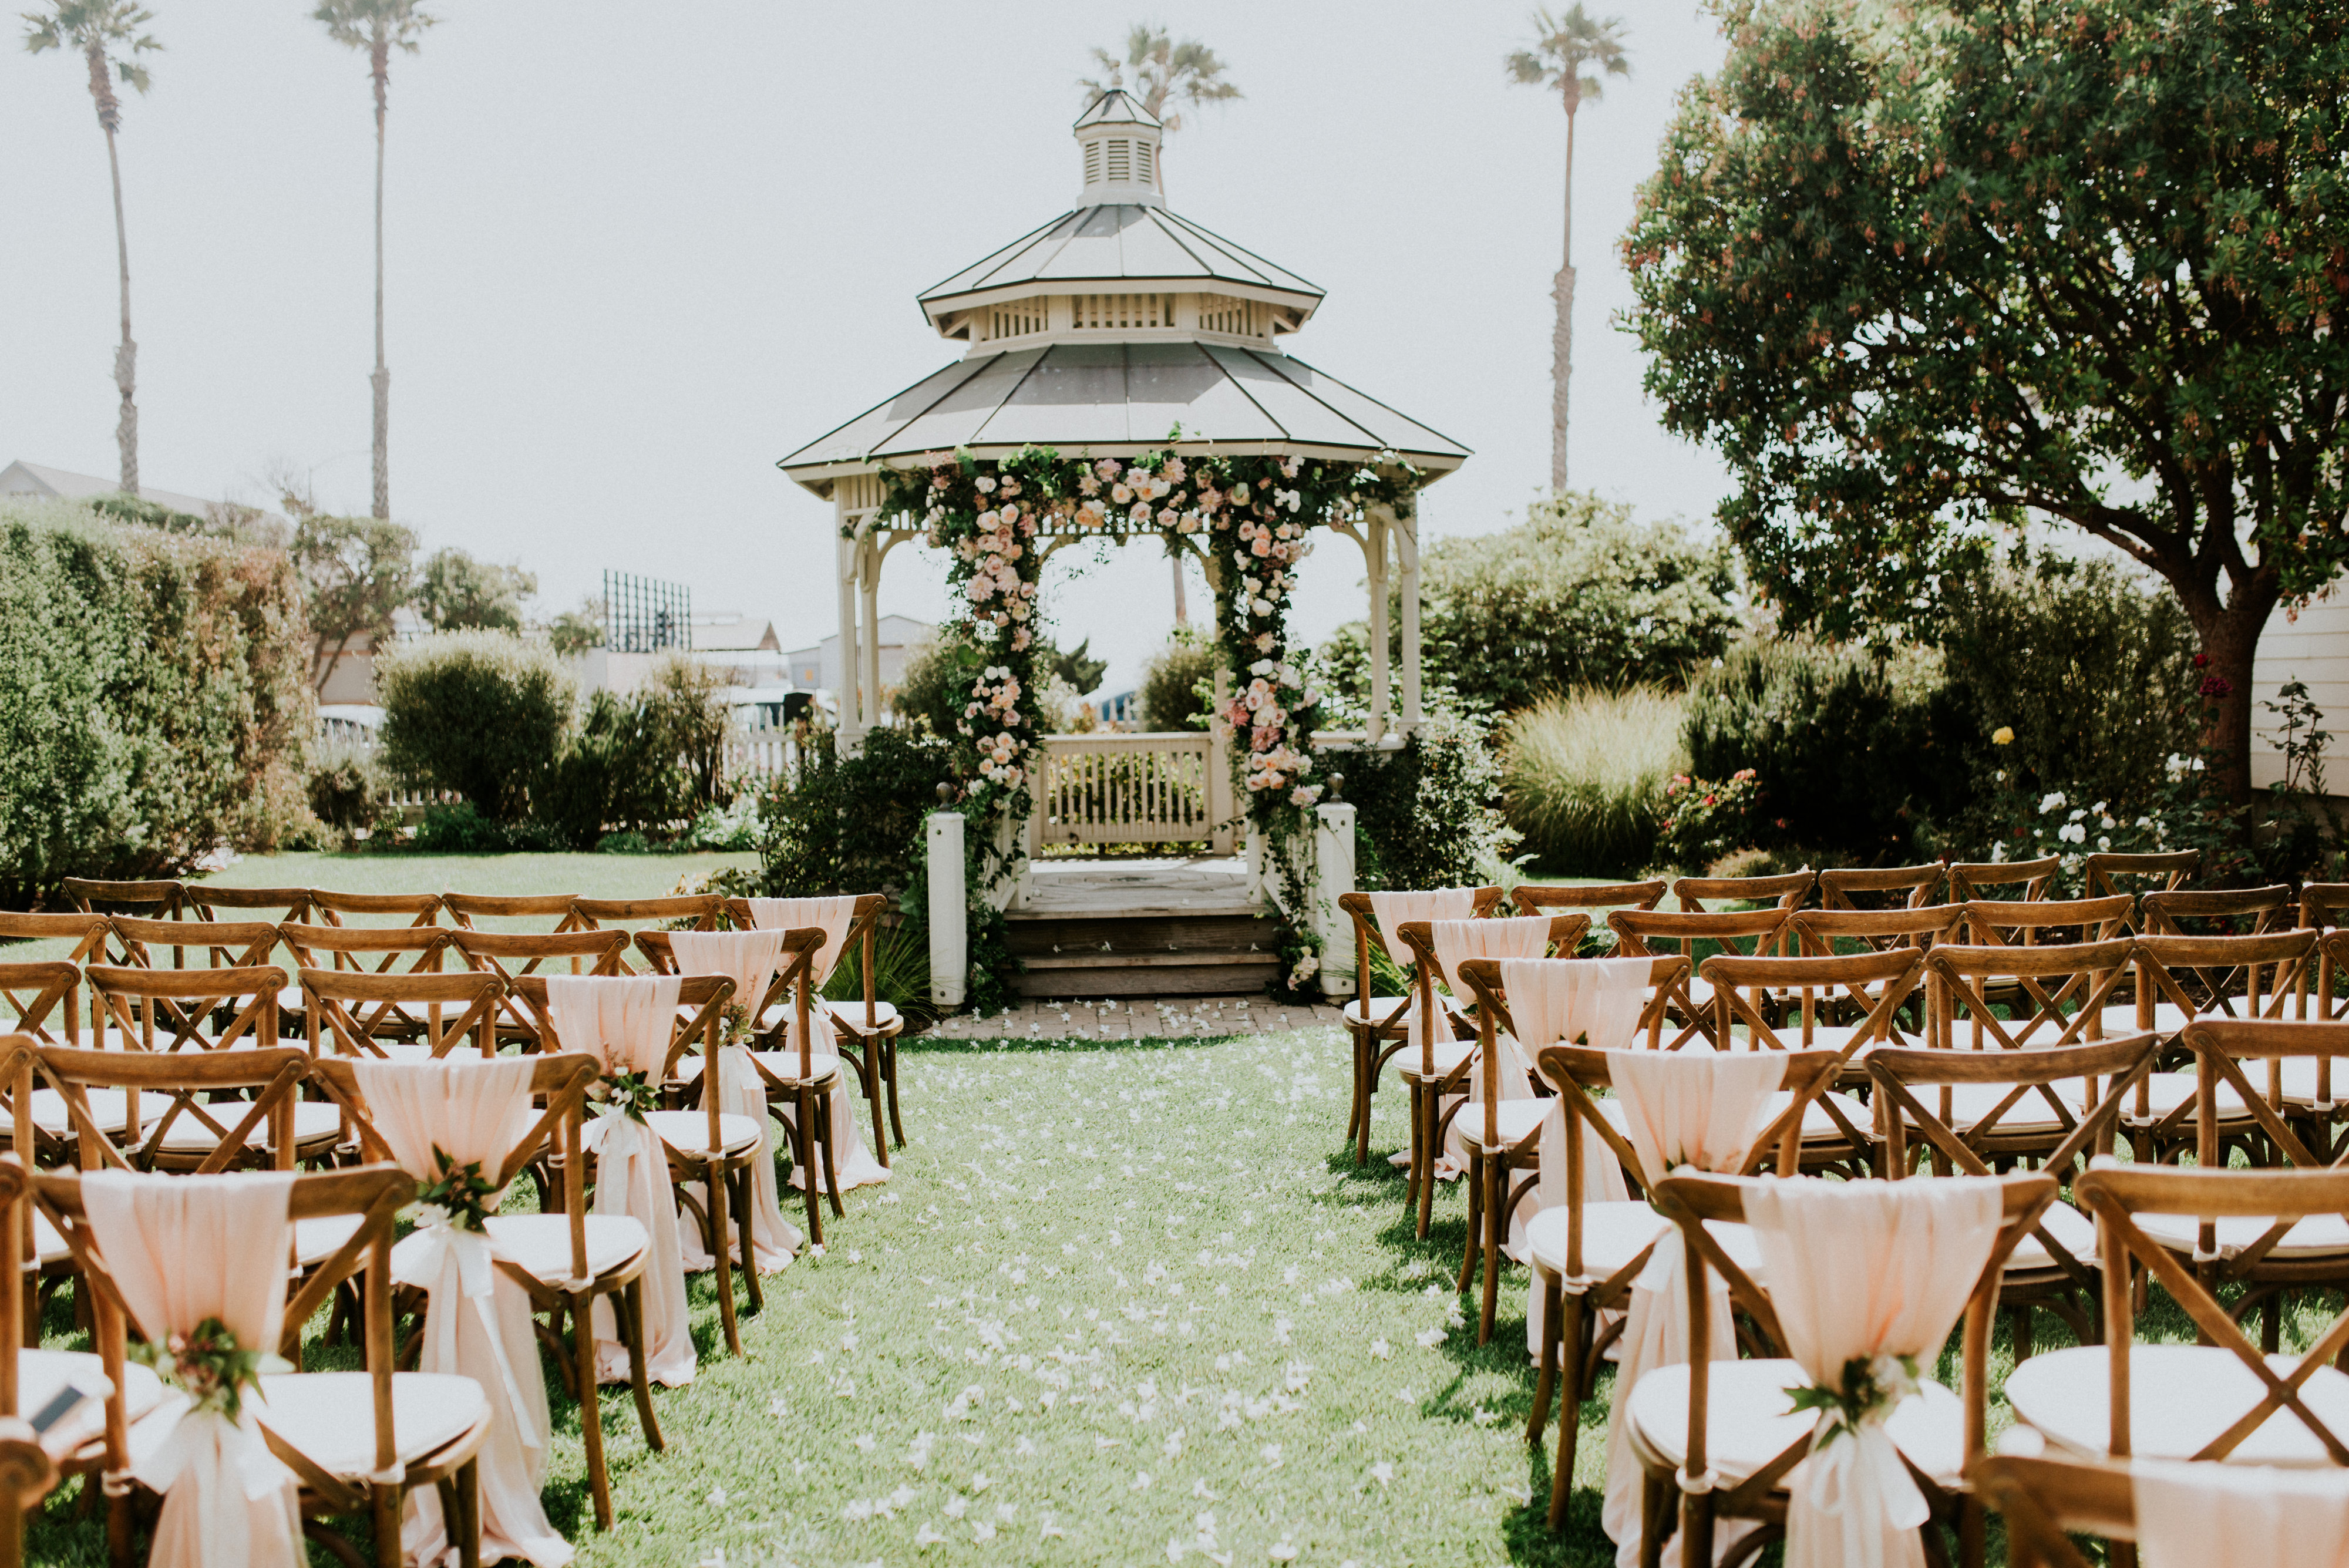 View More: http://shellyandersonphotography.pass.us/samandkevin